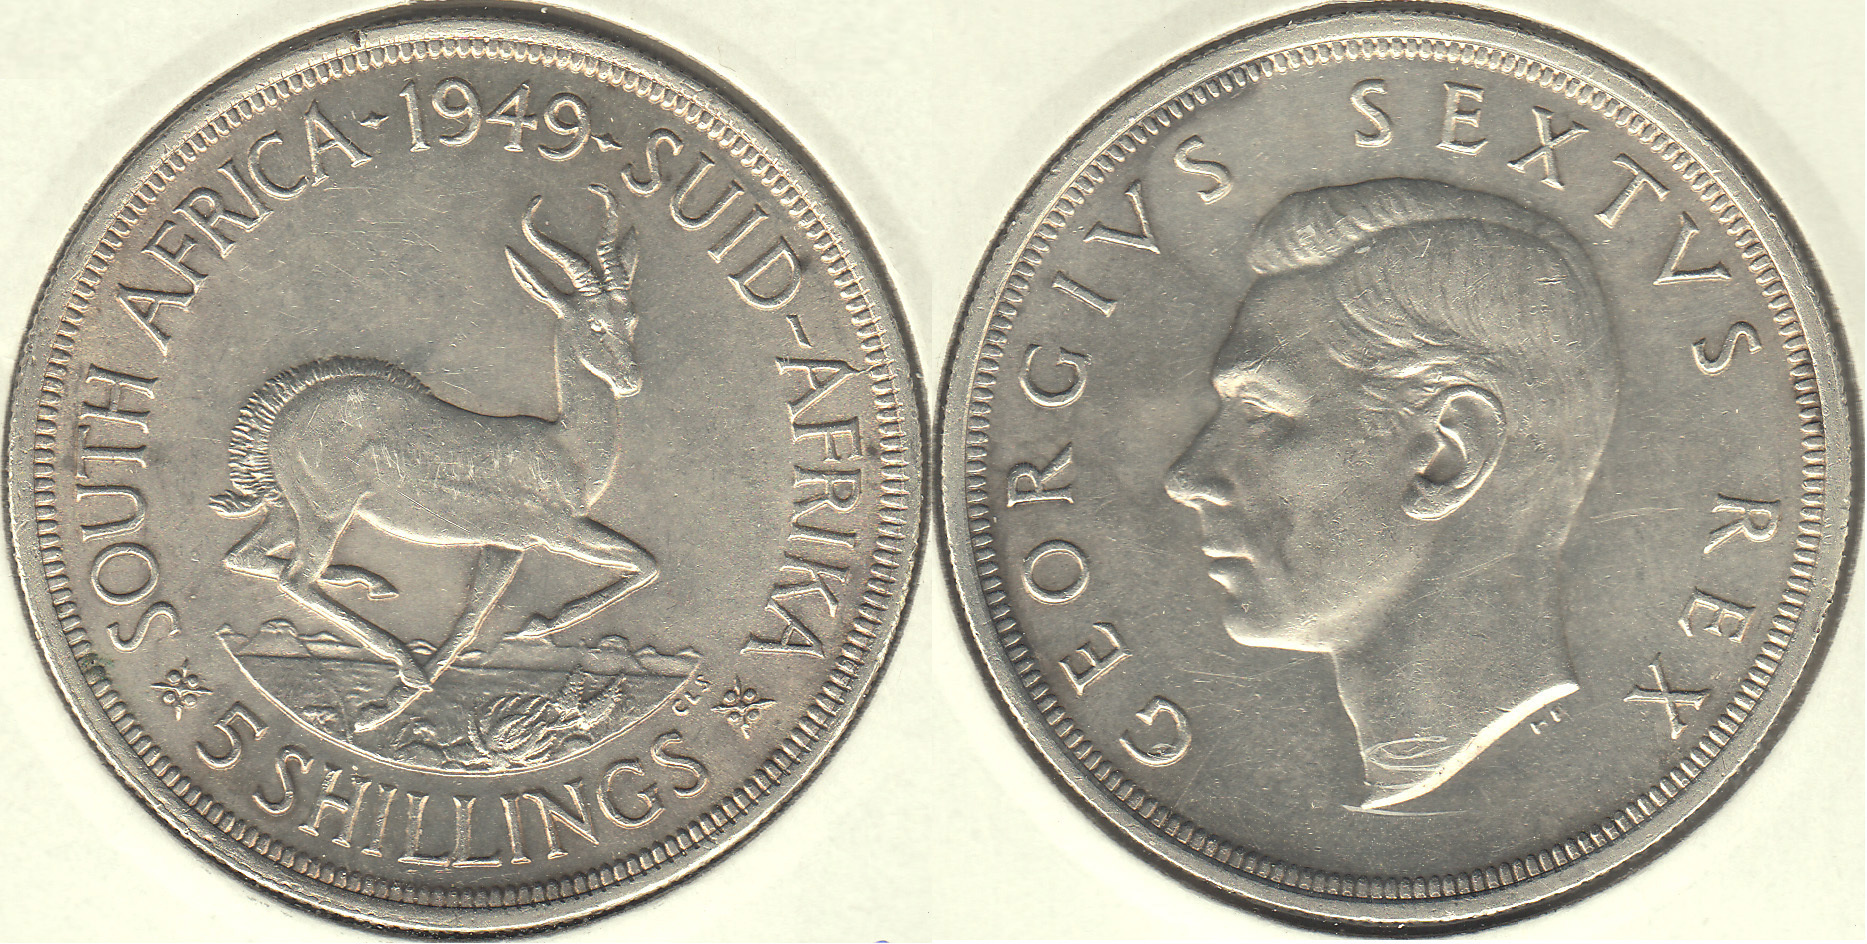 SUDAFRICA - SOUTH AFRICA. 5 SHILLINGS DE 1949. PLATA 0.800.